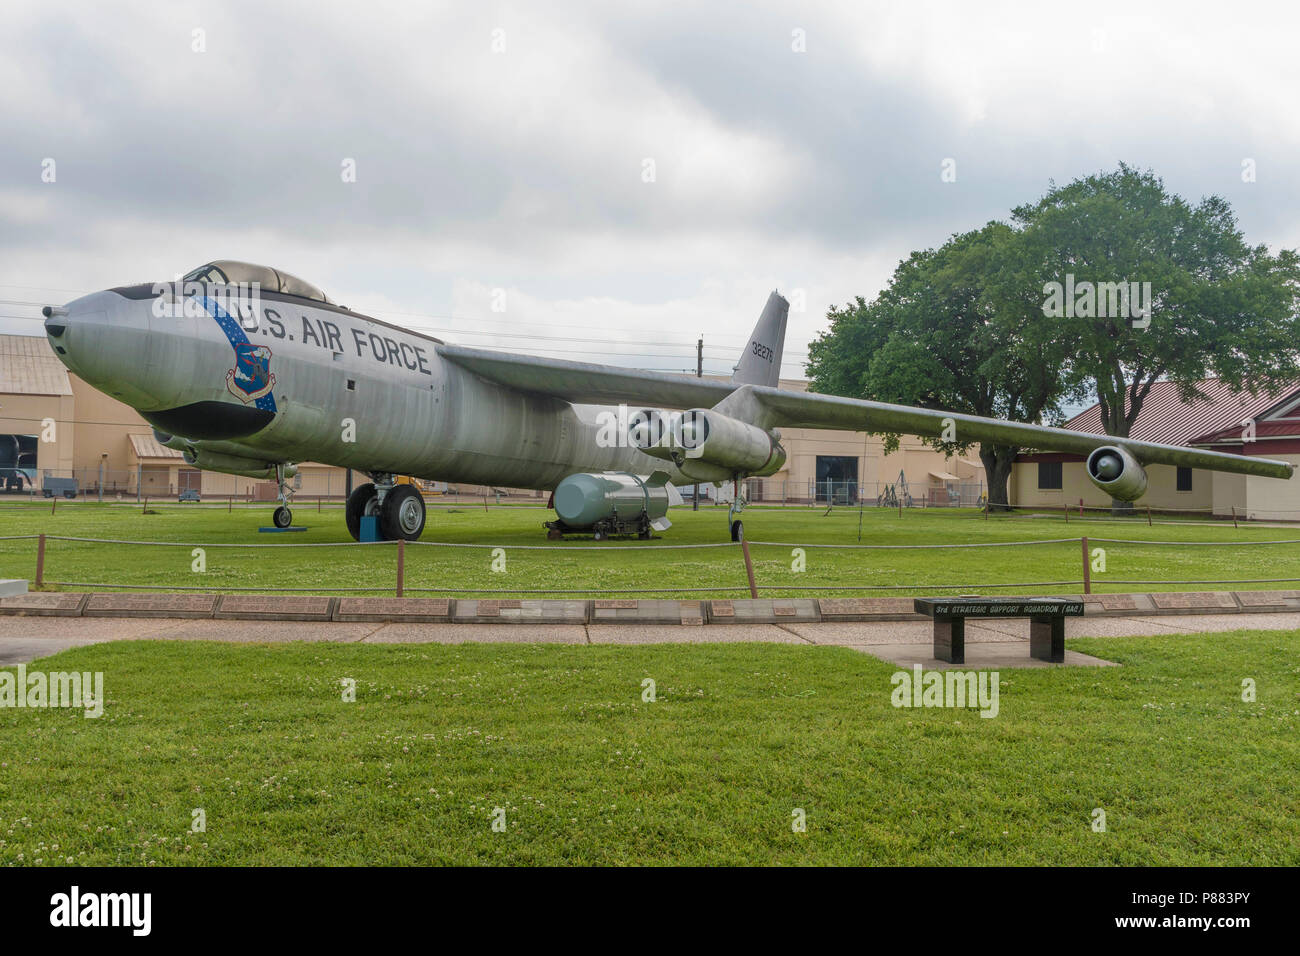 BARKSDALE AIR FORCE BASE. LA, USA, APRIL 12, 2017: A B-47E Bomber is on display at the Barksdale Global Power Museaum. - Stock Image